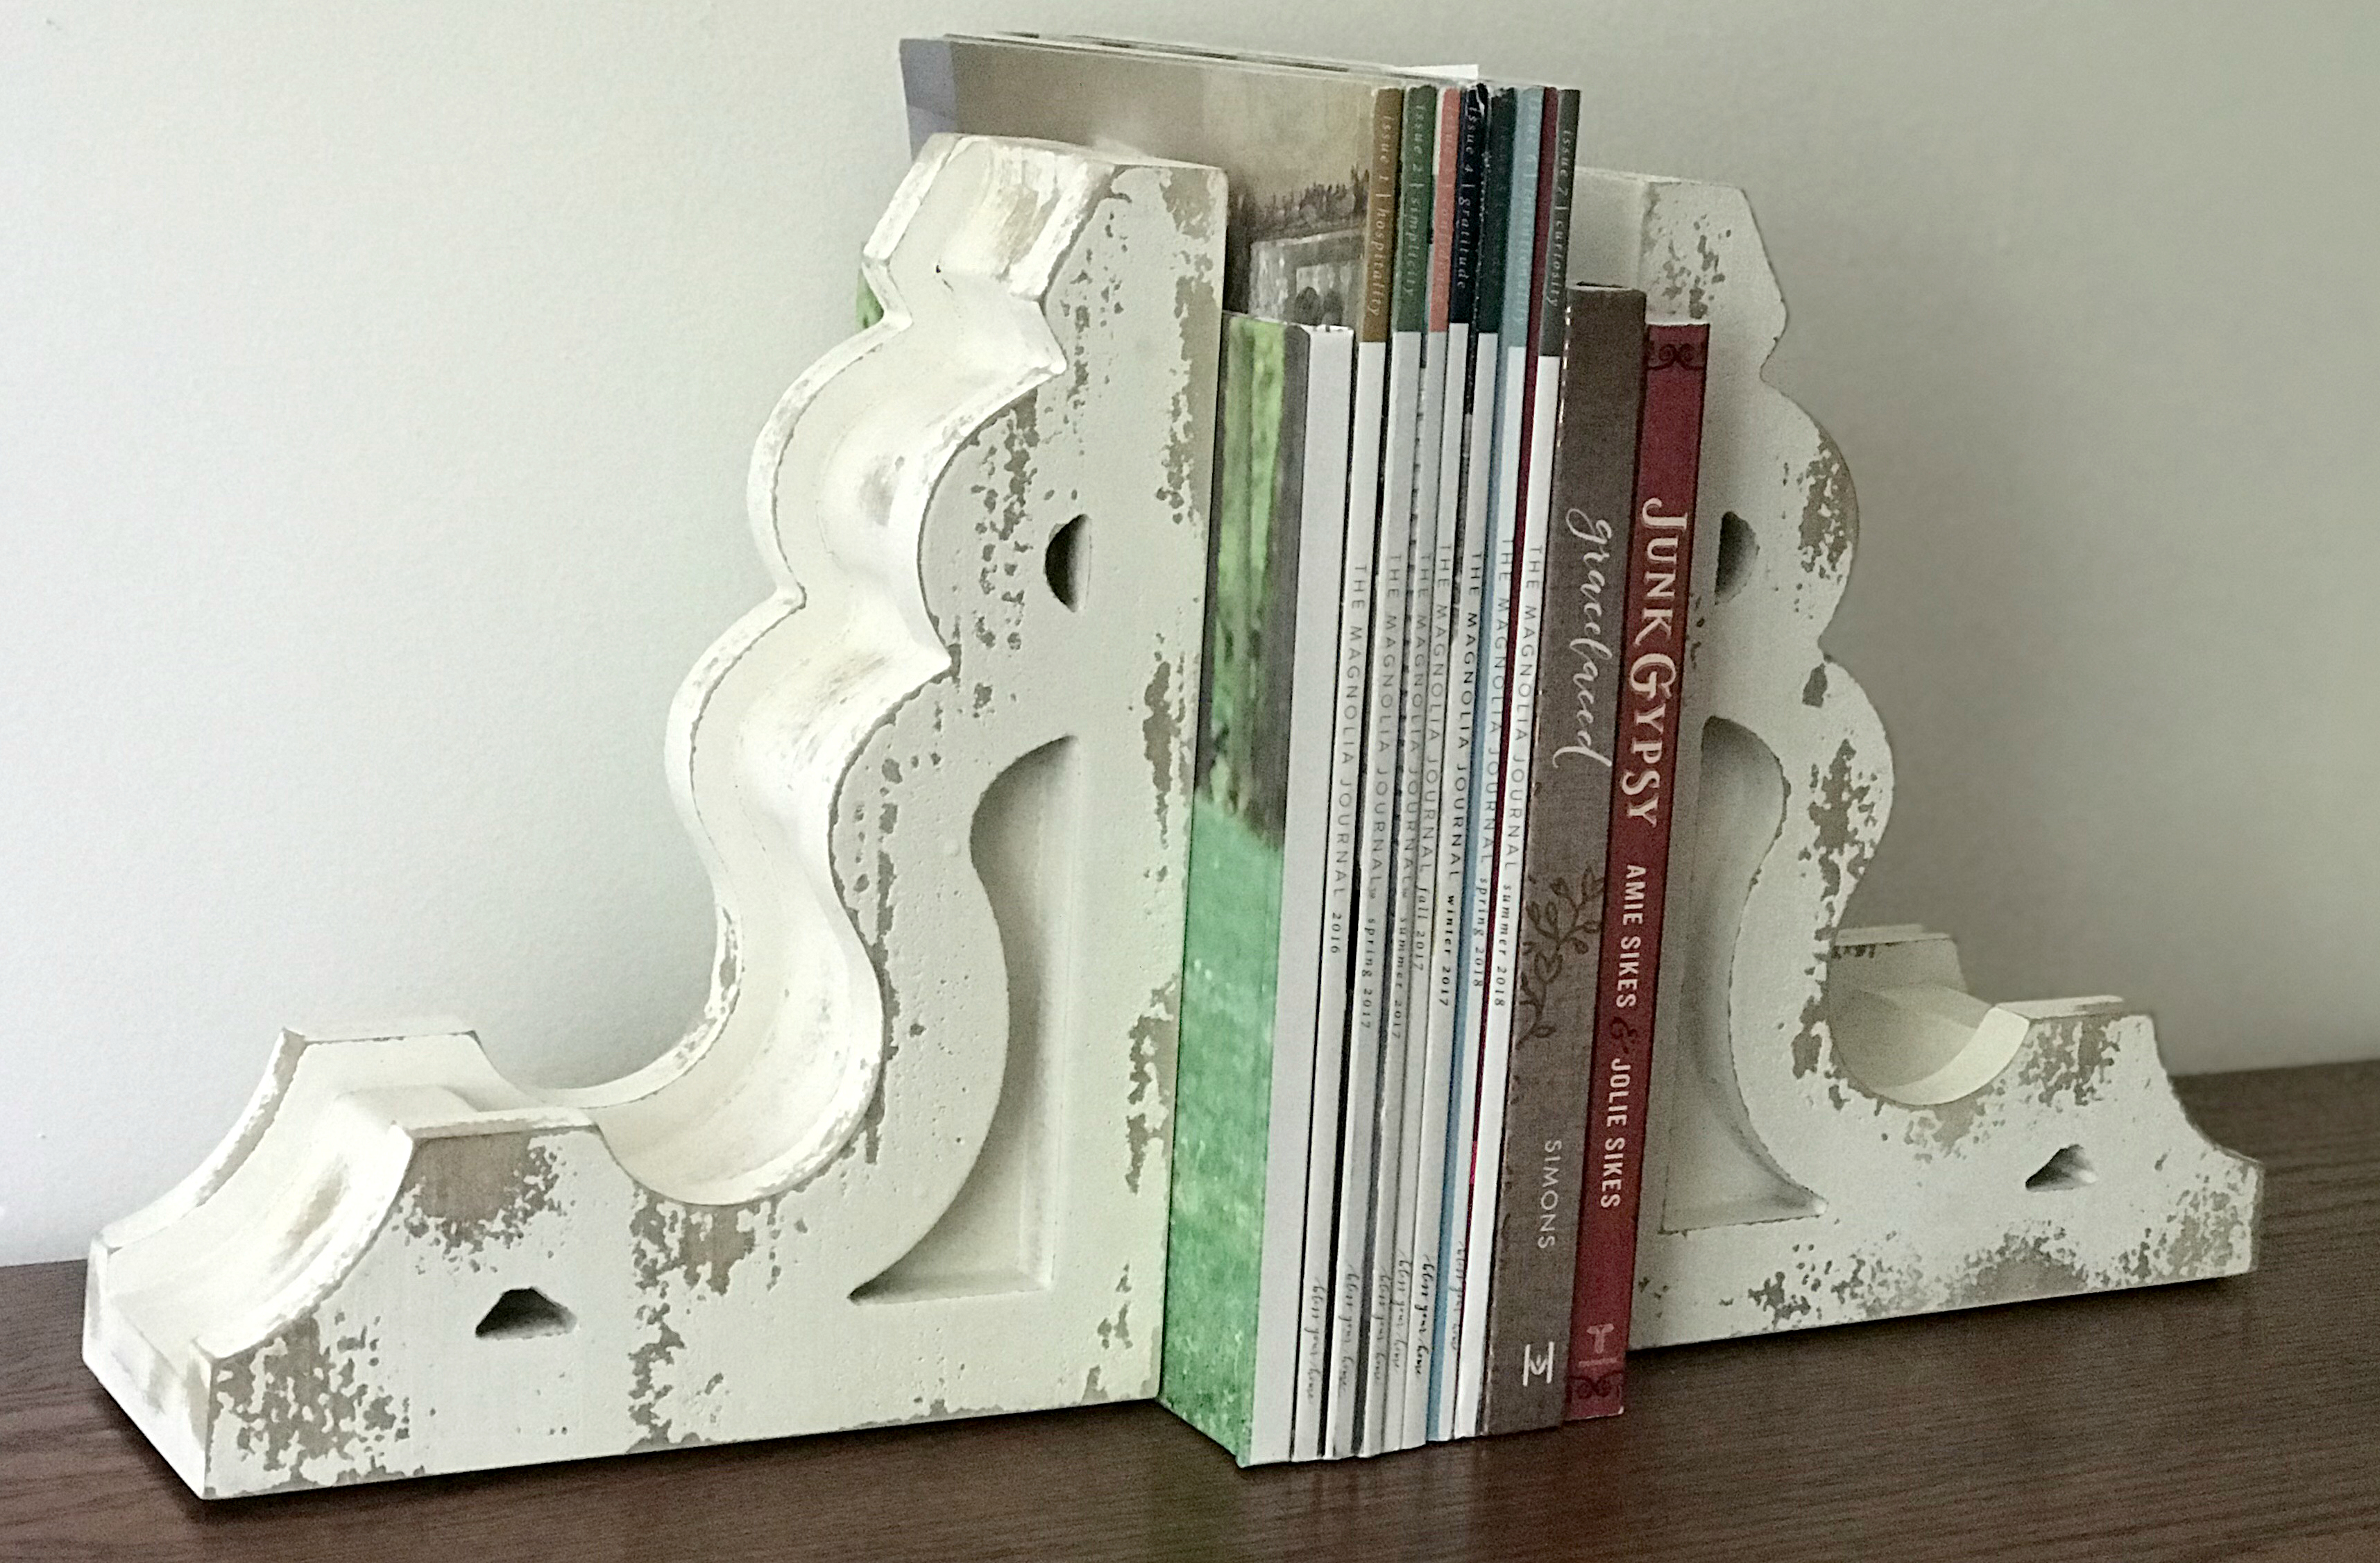 hobby lobby magnolia market corbel bookends – book ends at home